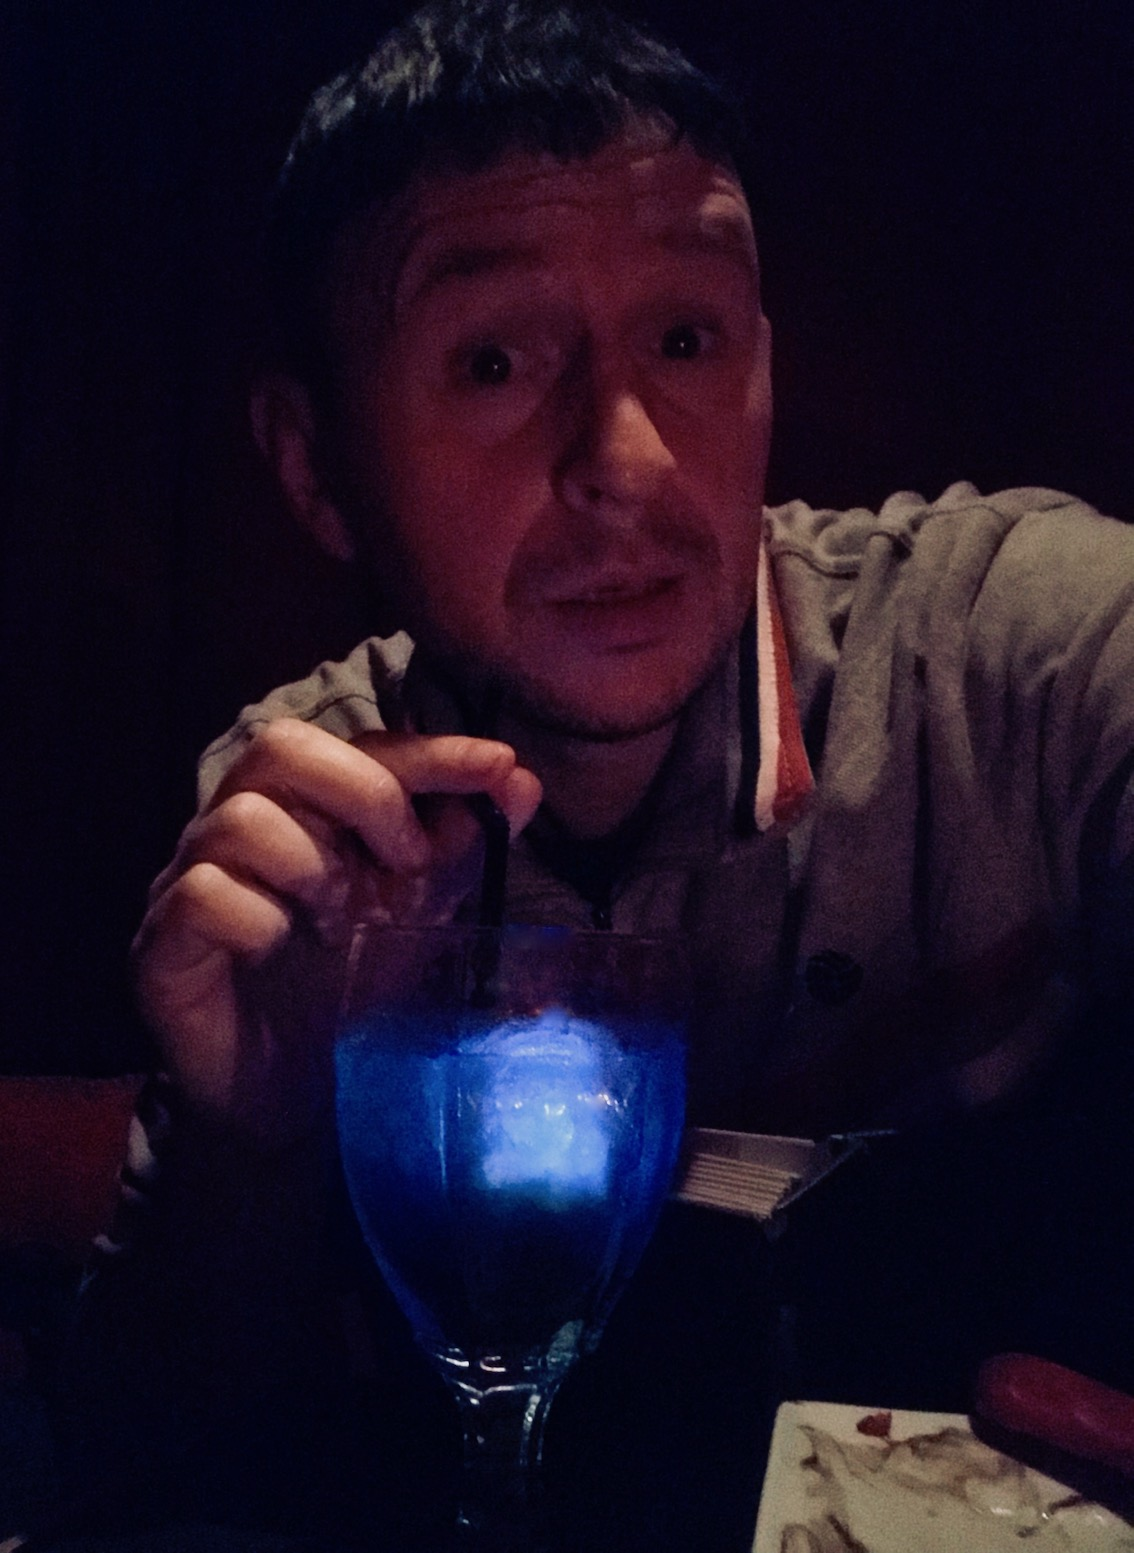 Blue Curacao cocktail with strawberry syrup bloodstains The Vampire Cafe Tokyo